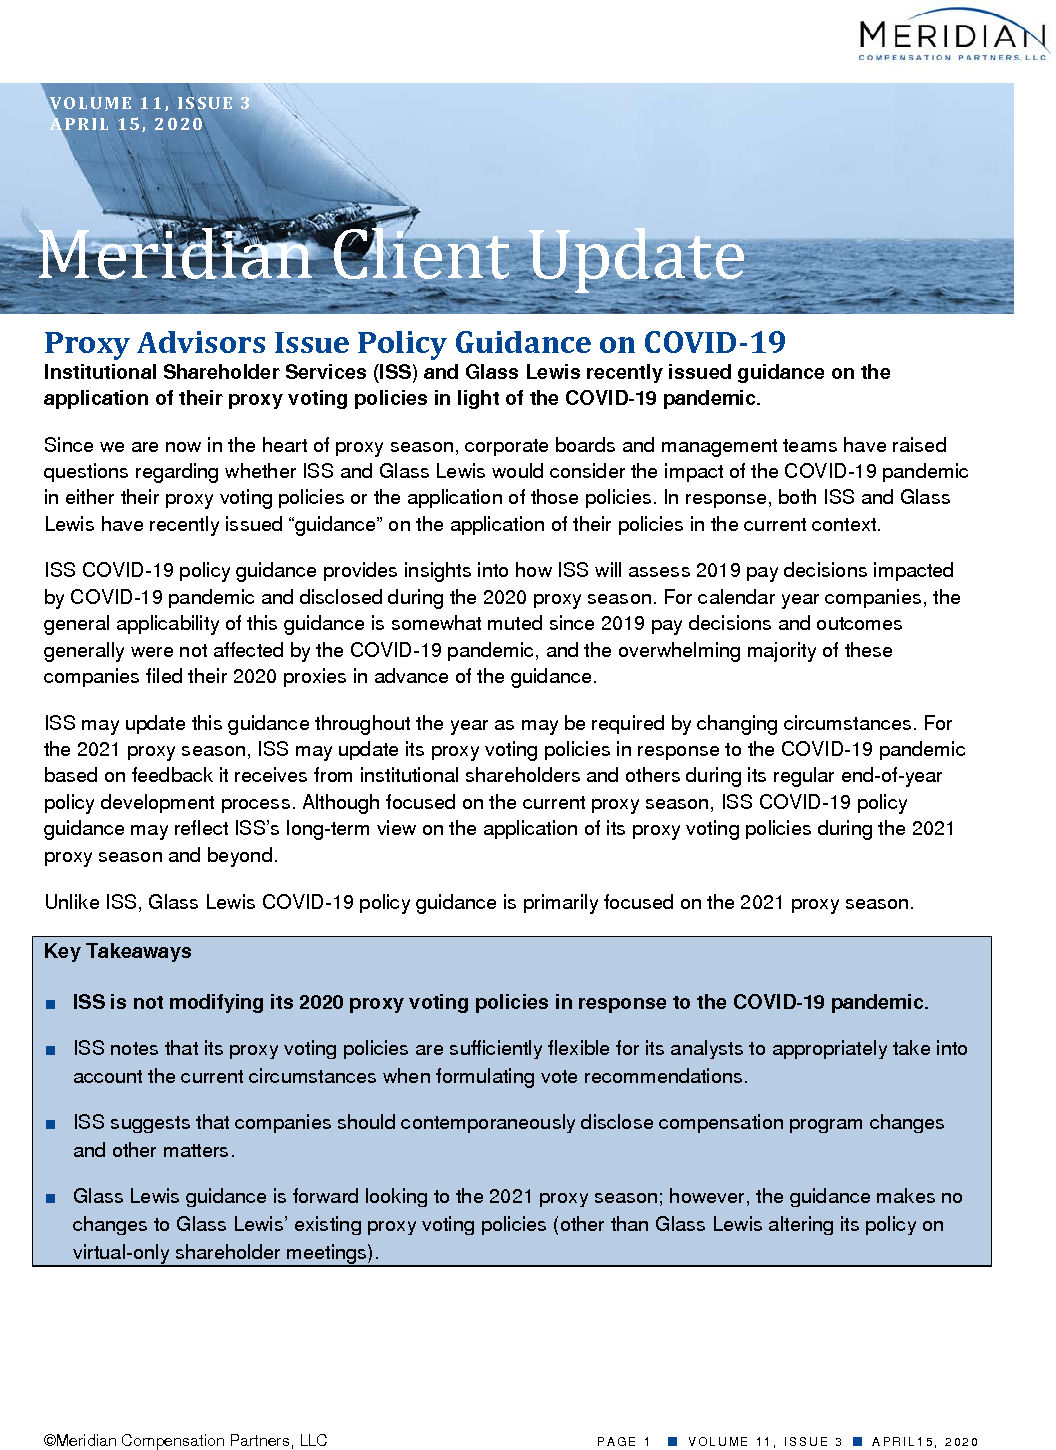 Proxy Advisors Issue Policy Guidance on COVID-19 (PDF)